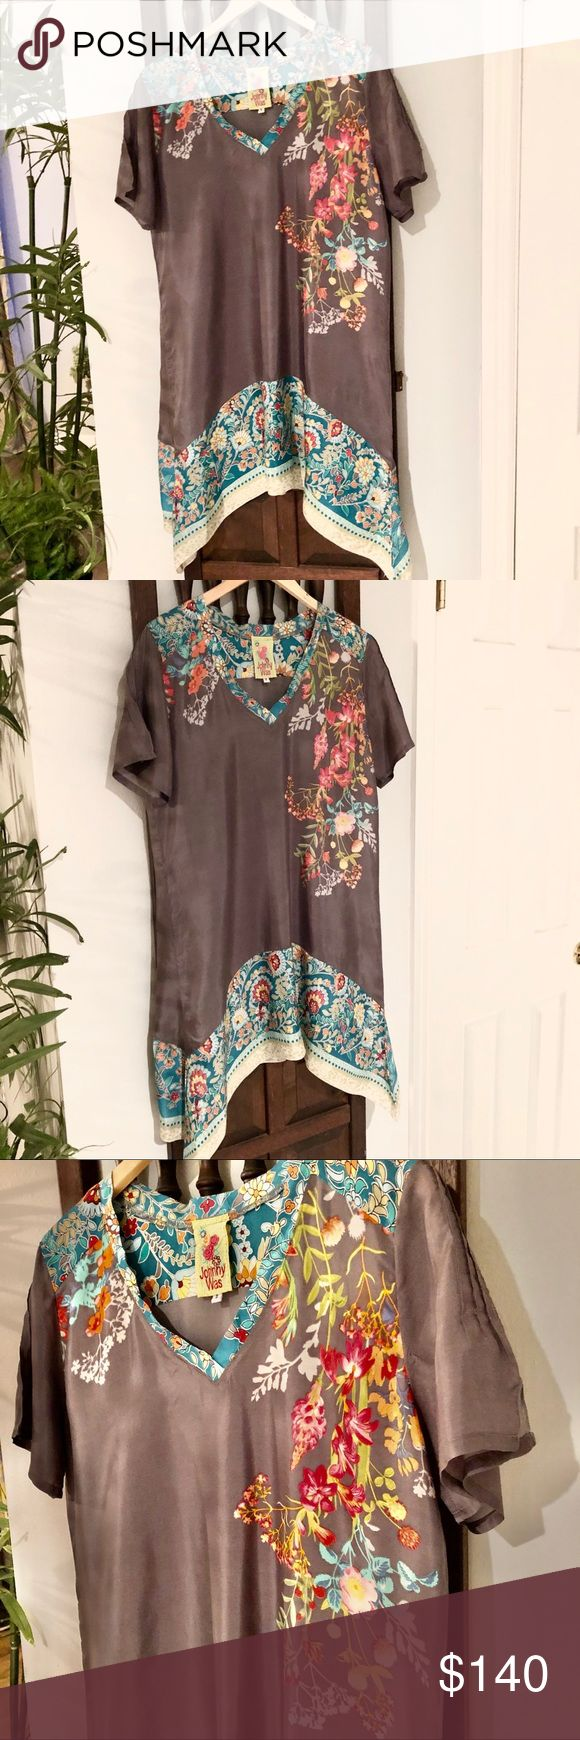 Best Johnny Was Gray Silk Tunic Dress In 2020 With Images 400 x 300